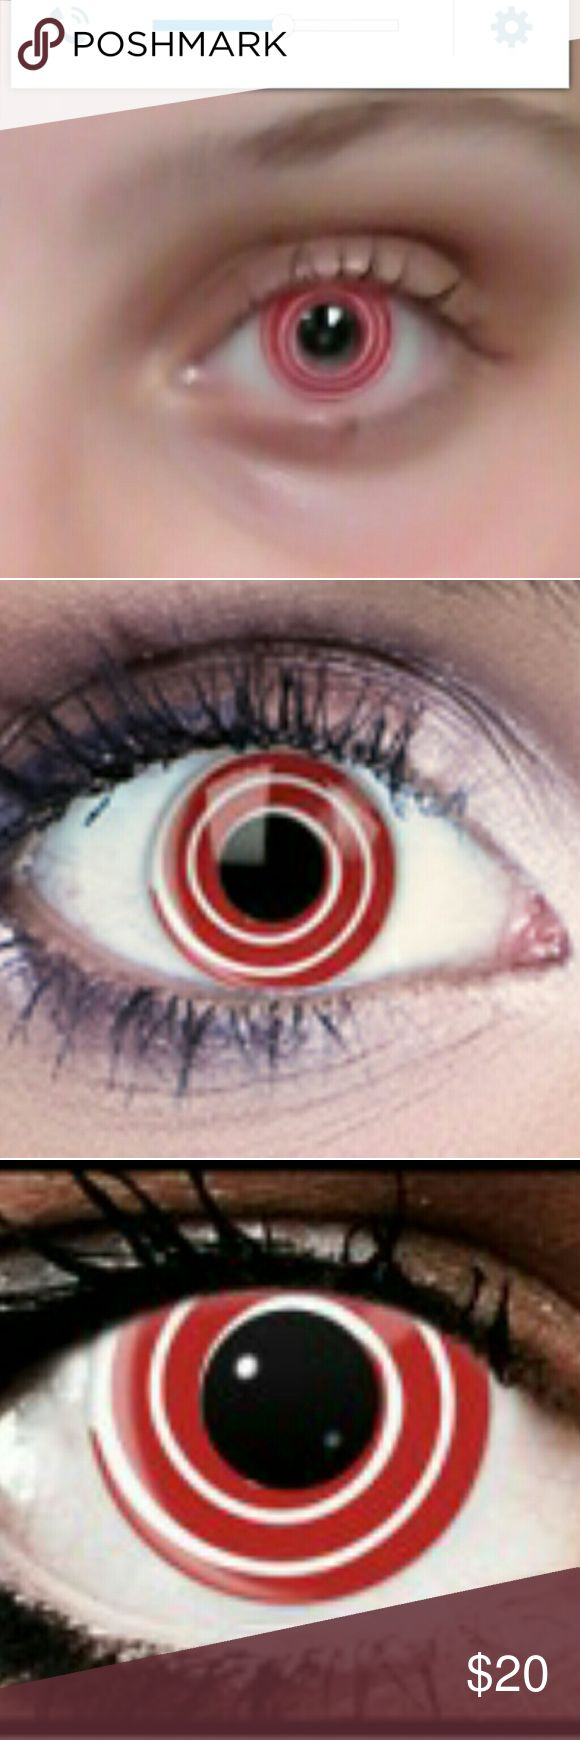 Red and White Spiral non prescription Contacts No prescription nessesary only freaky color red and White Contact lenses.Wear these Ozone spiral contact lenses for fun, cosplay,Halloween,Comicon, or just to freak out your friends. These spiral contacts will last a year from when they are opened with proper care. Accessories Glasses